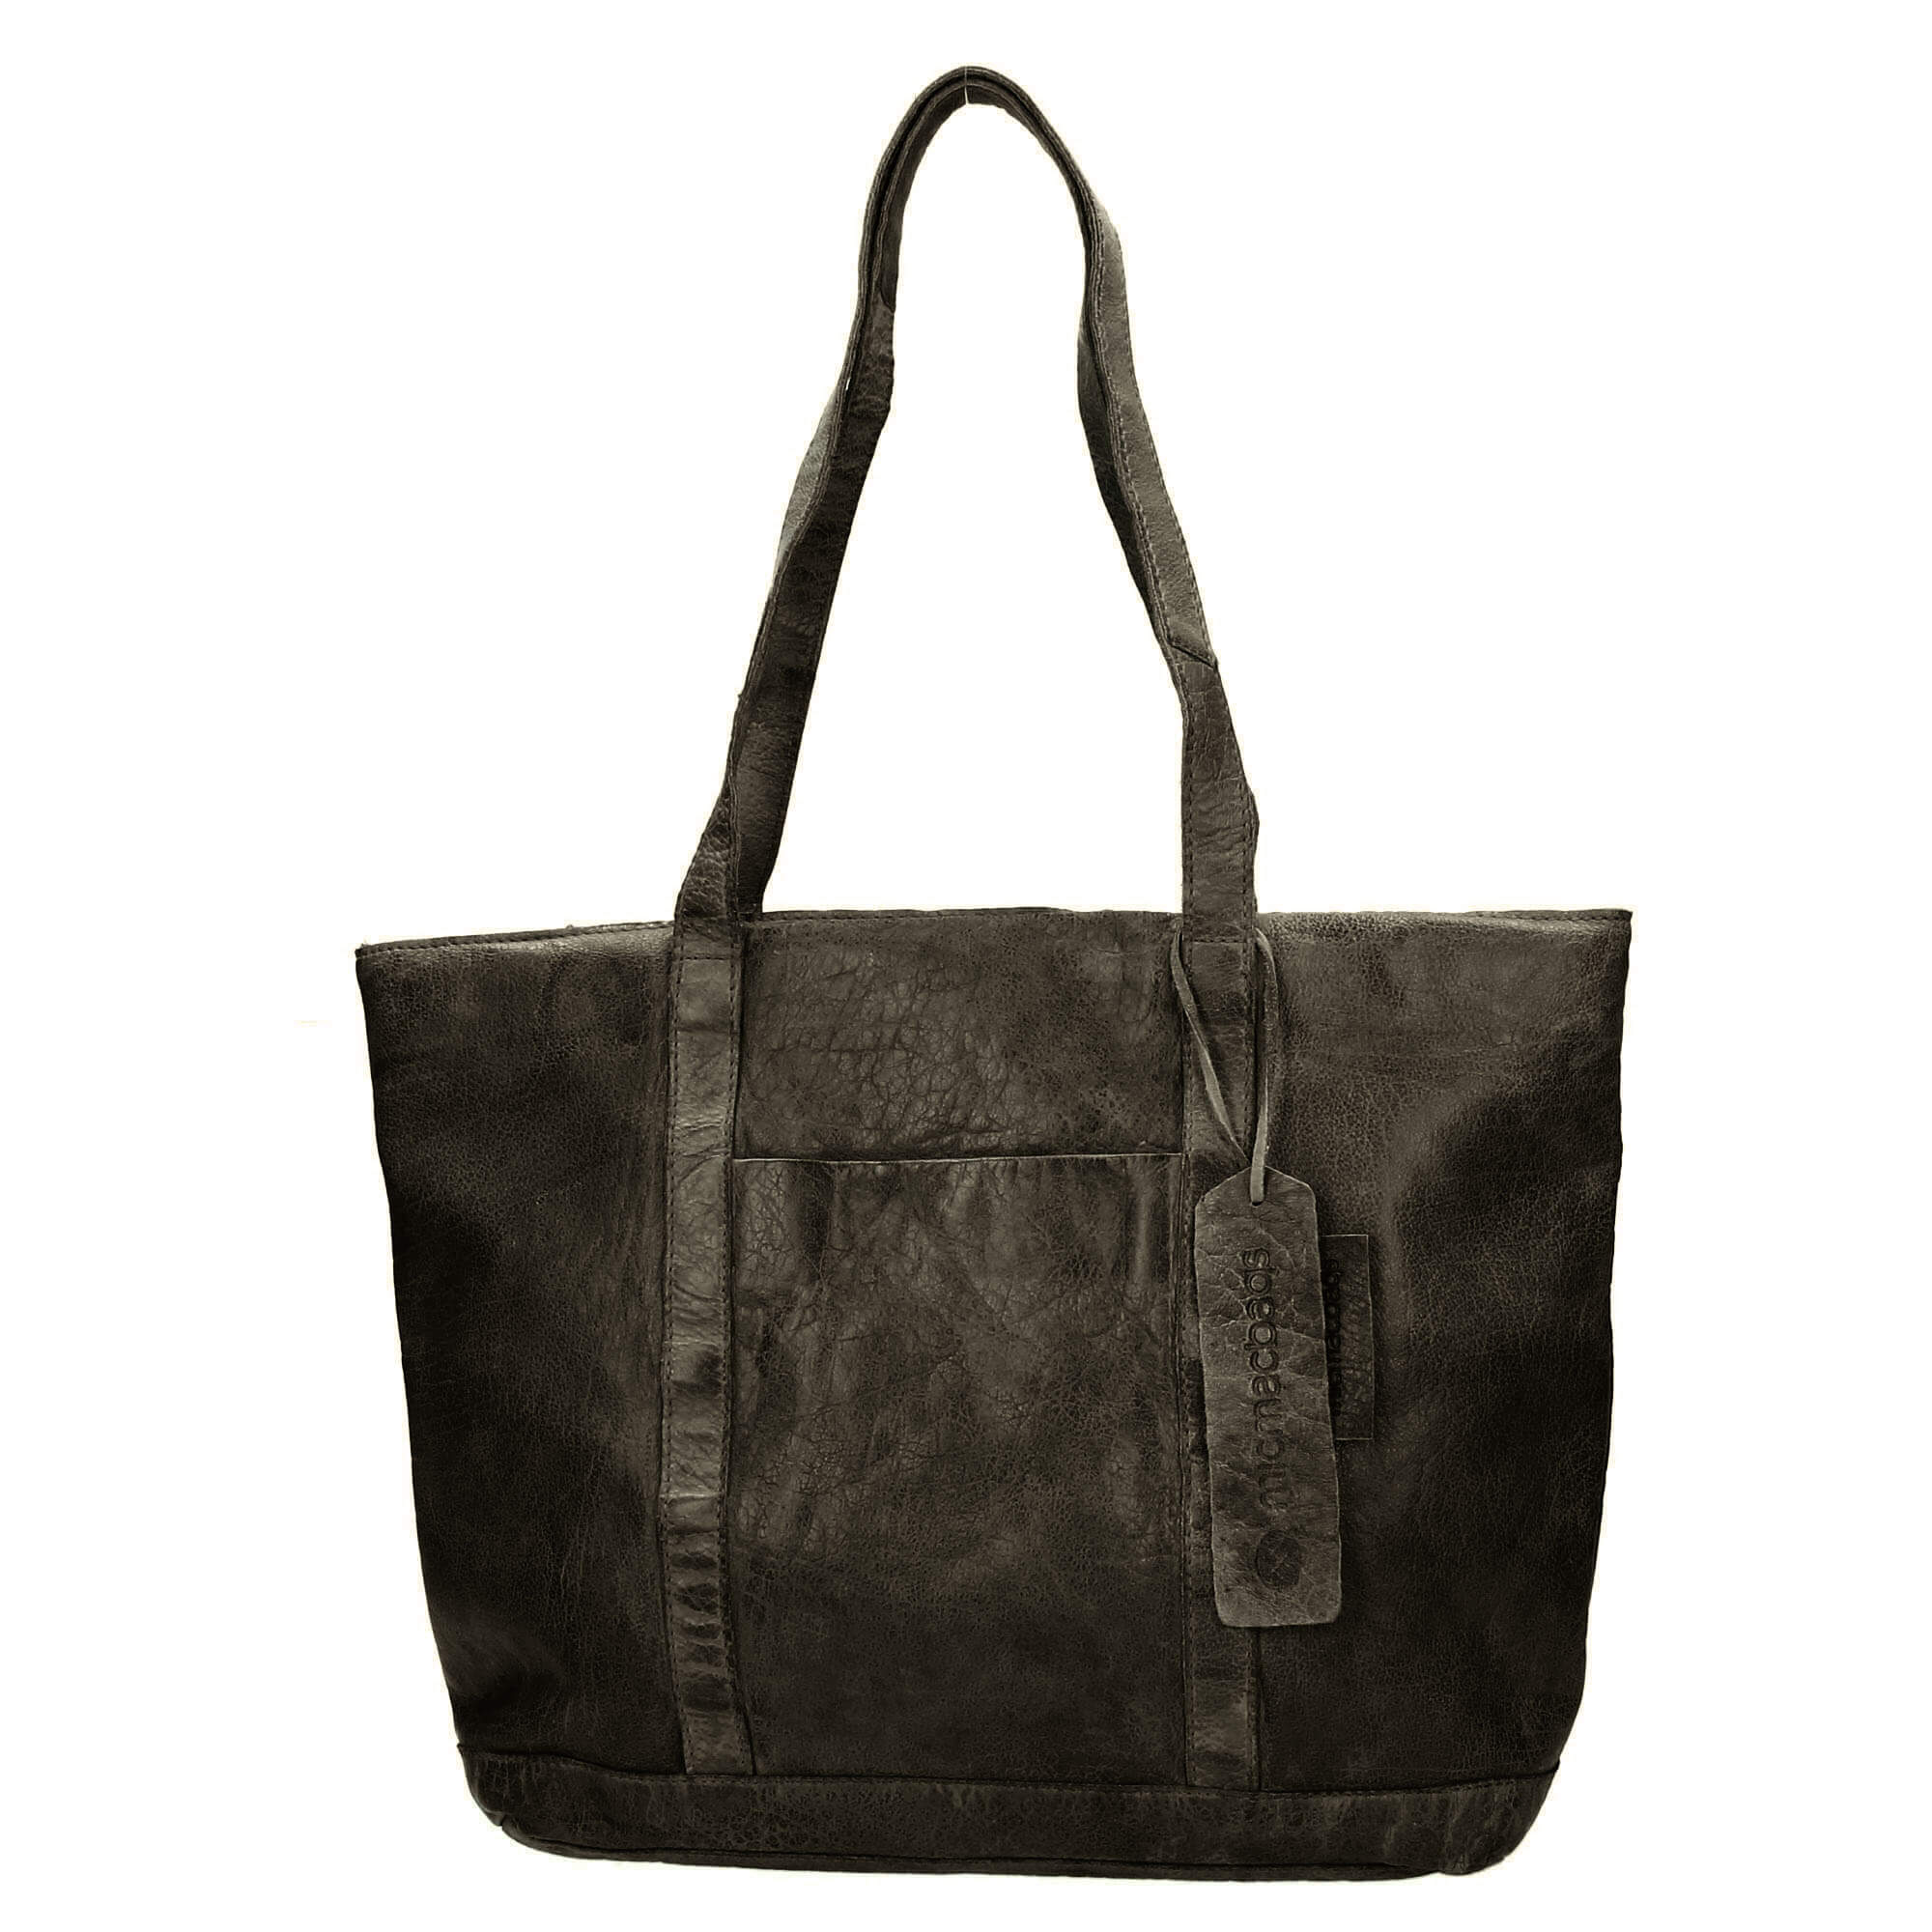 Micmacbags Shopper, 16556, Army Groen